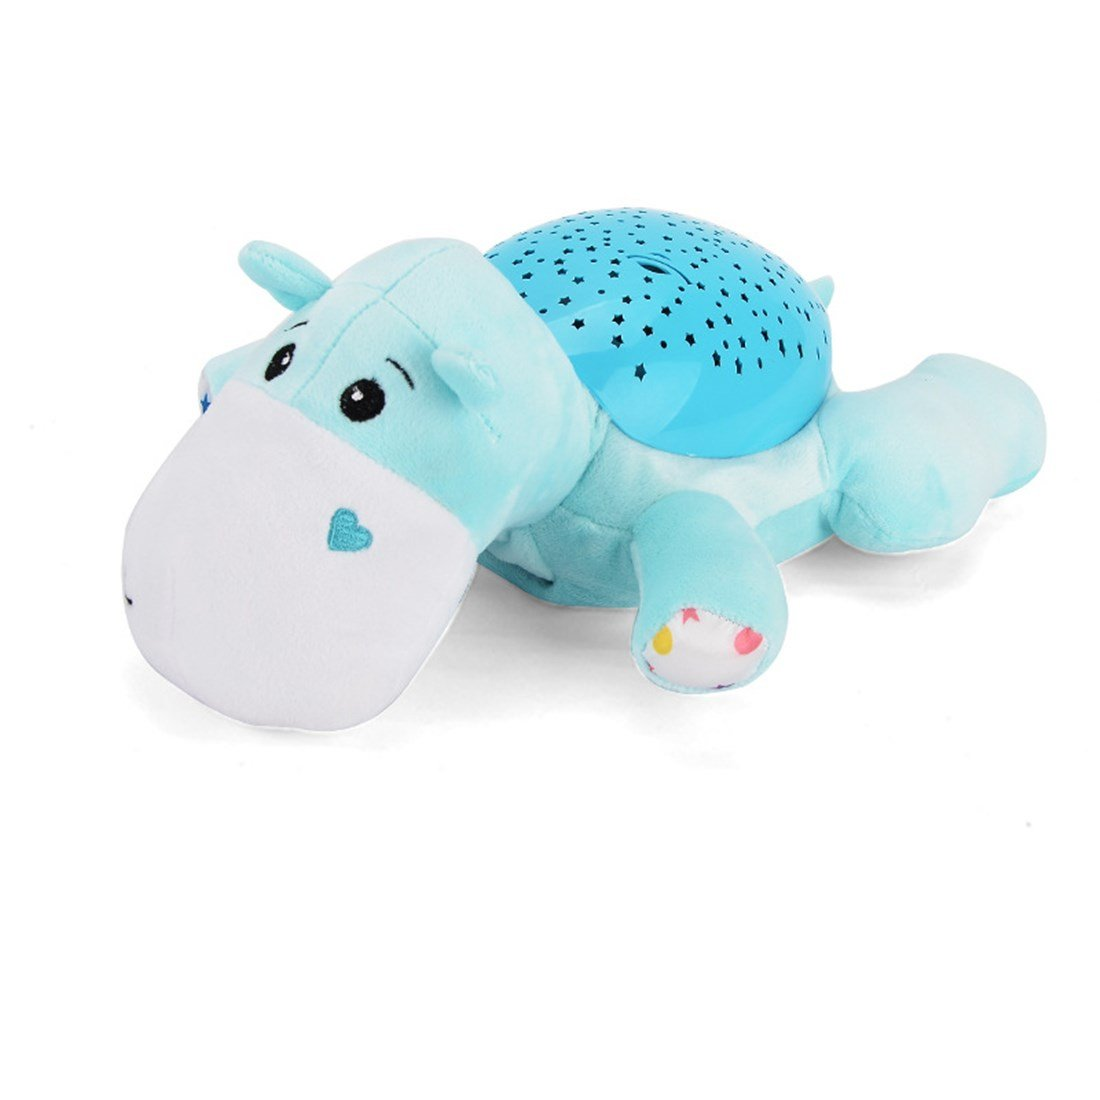 ESOCOME Baby Plush Hippo Toy Hypnotic Star and Moon Light Projector with Melodies -Animal Doll Sleep Soother Starry Night Light for Baby Infant Kids Nursery by ESOCOME (Image #3)